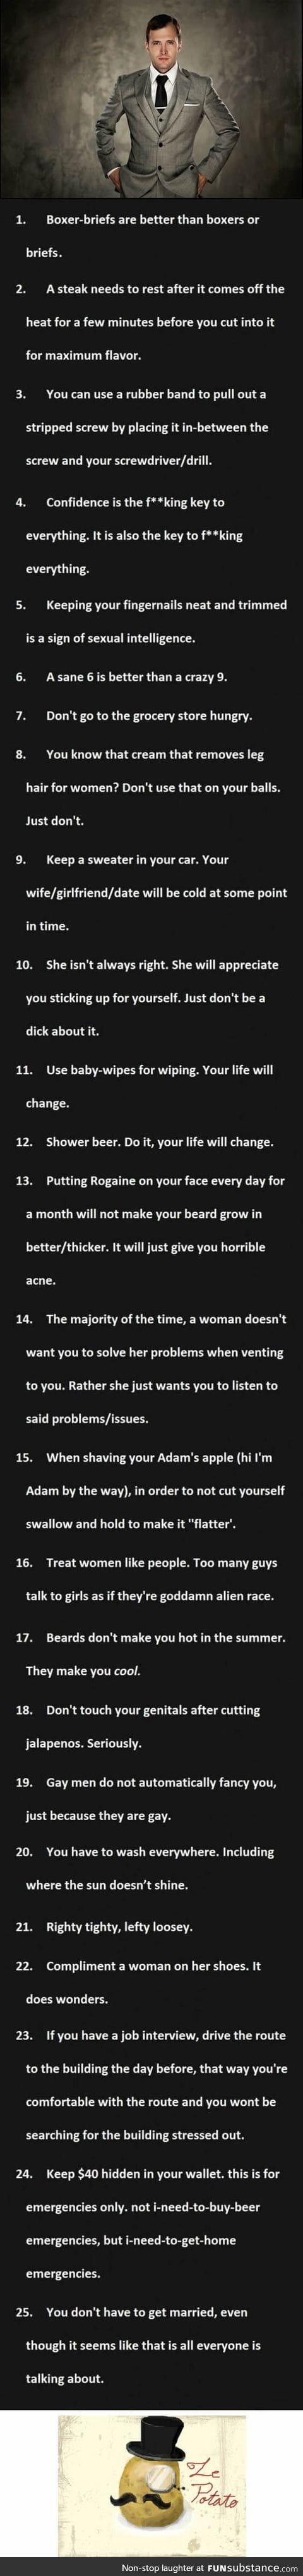 25 man secrets that all men should be aware of